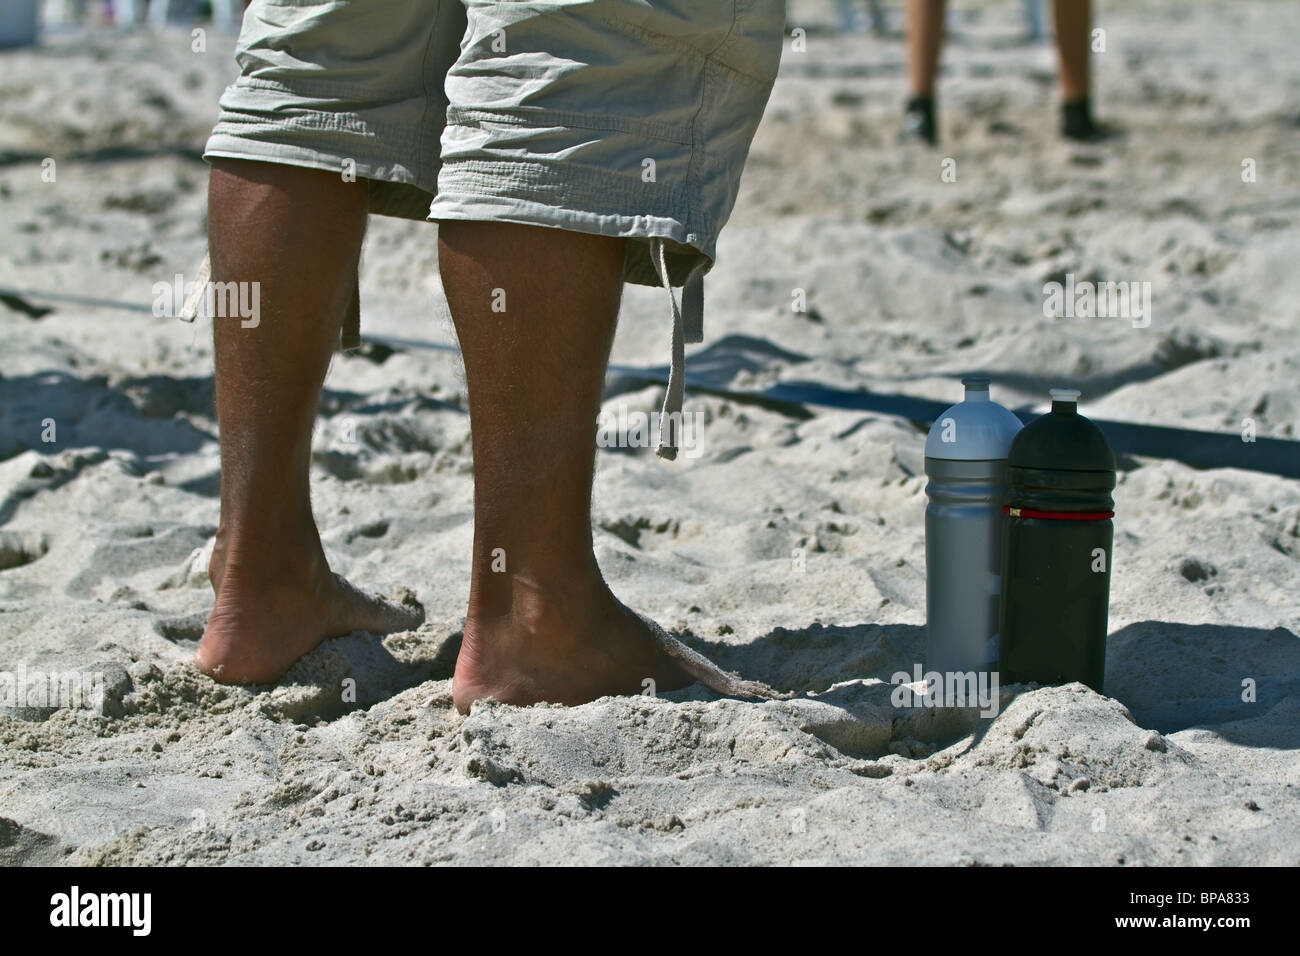 Aarhus, Denmark 2010. Beachvolley National Championship. Close-up feet of Spectator ready to assist with water bottles. - Stock Image